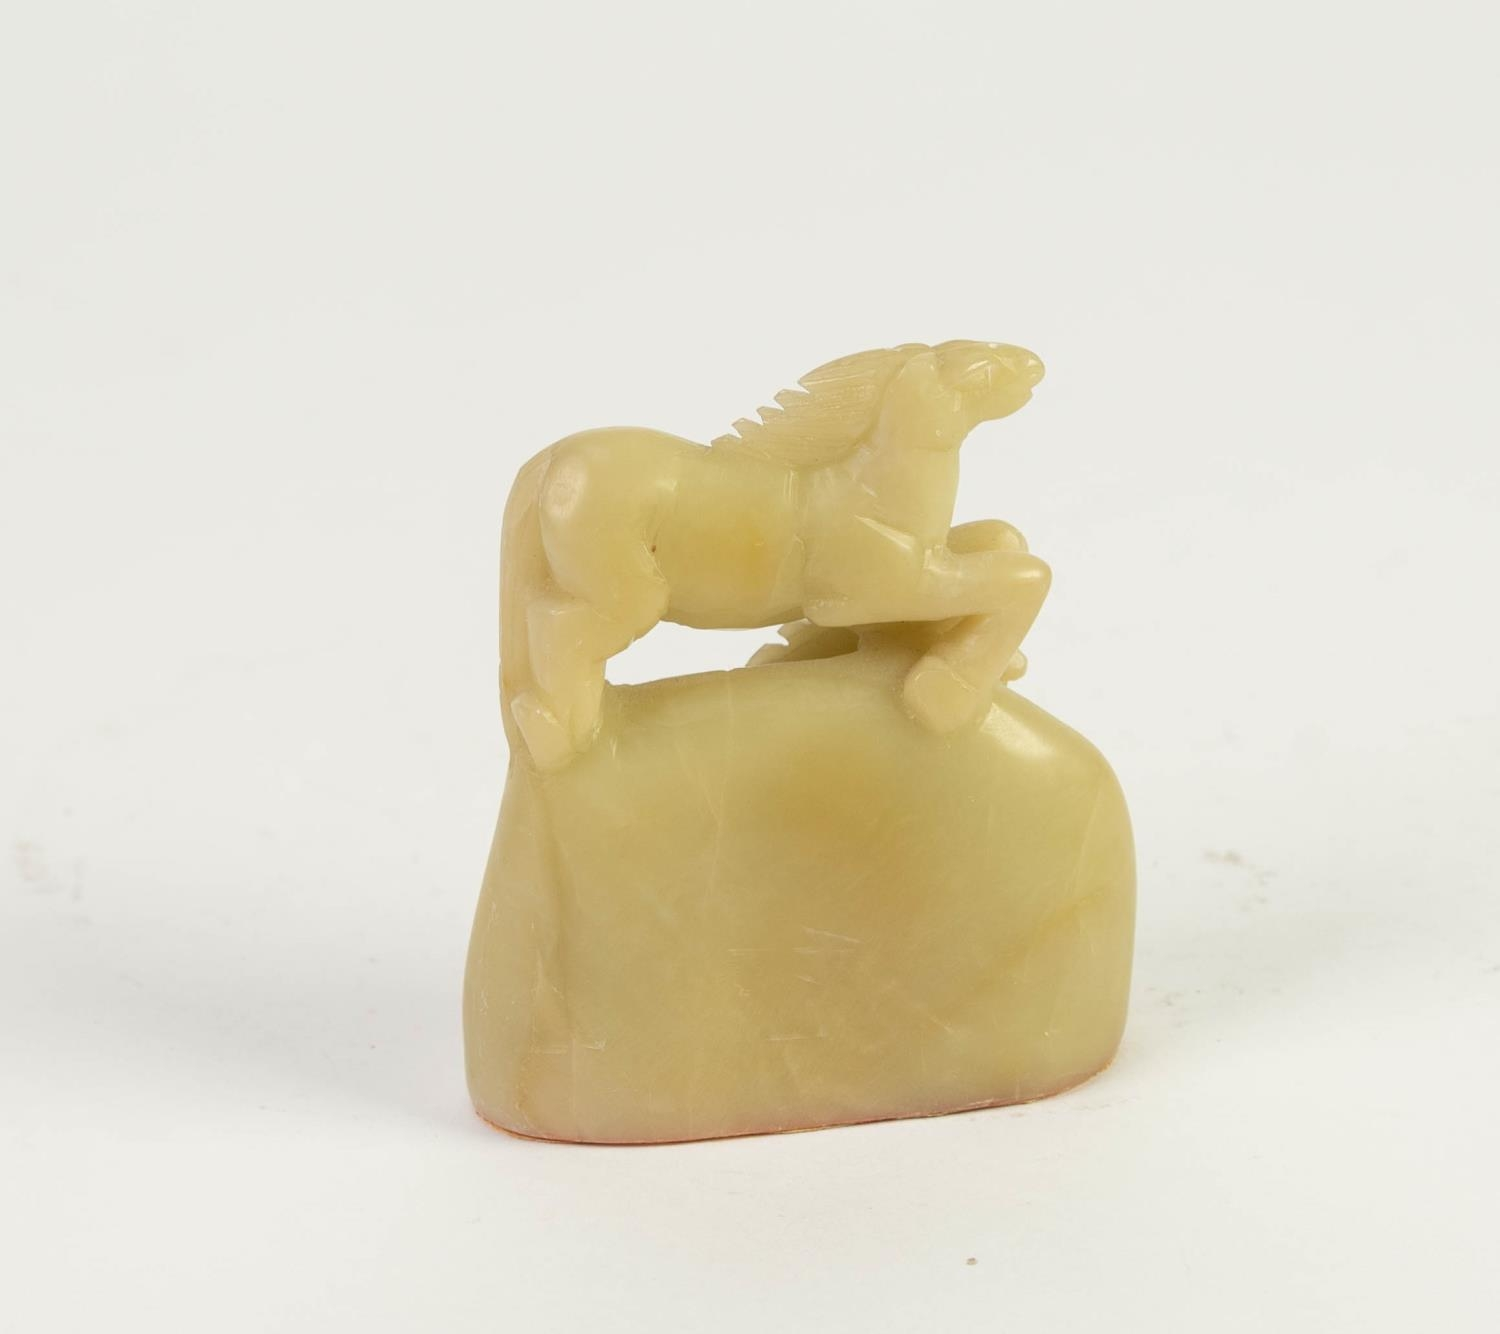 CHINESE PALE CELADON JADE CARVING OF TWO HORSES, 3in (7.5cm) high - Image 2 of 5